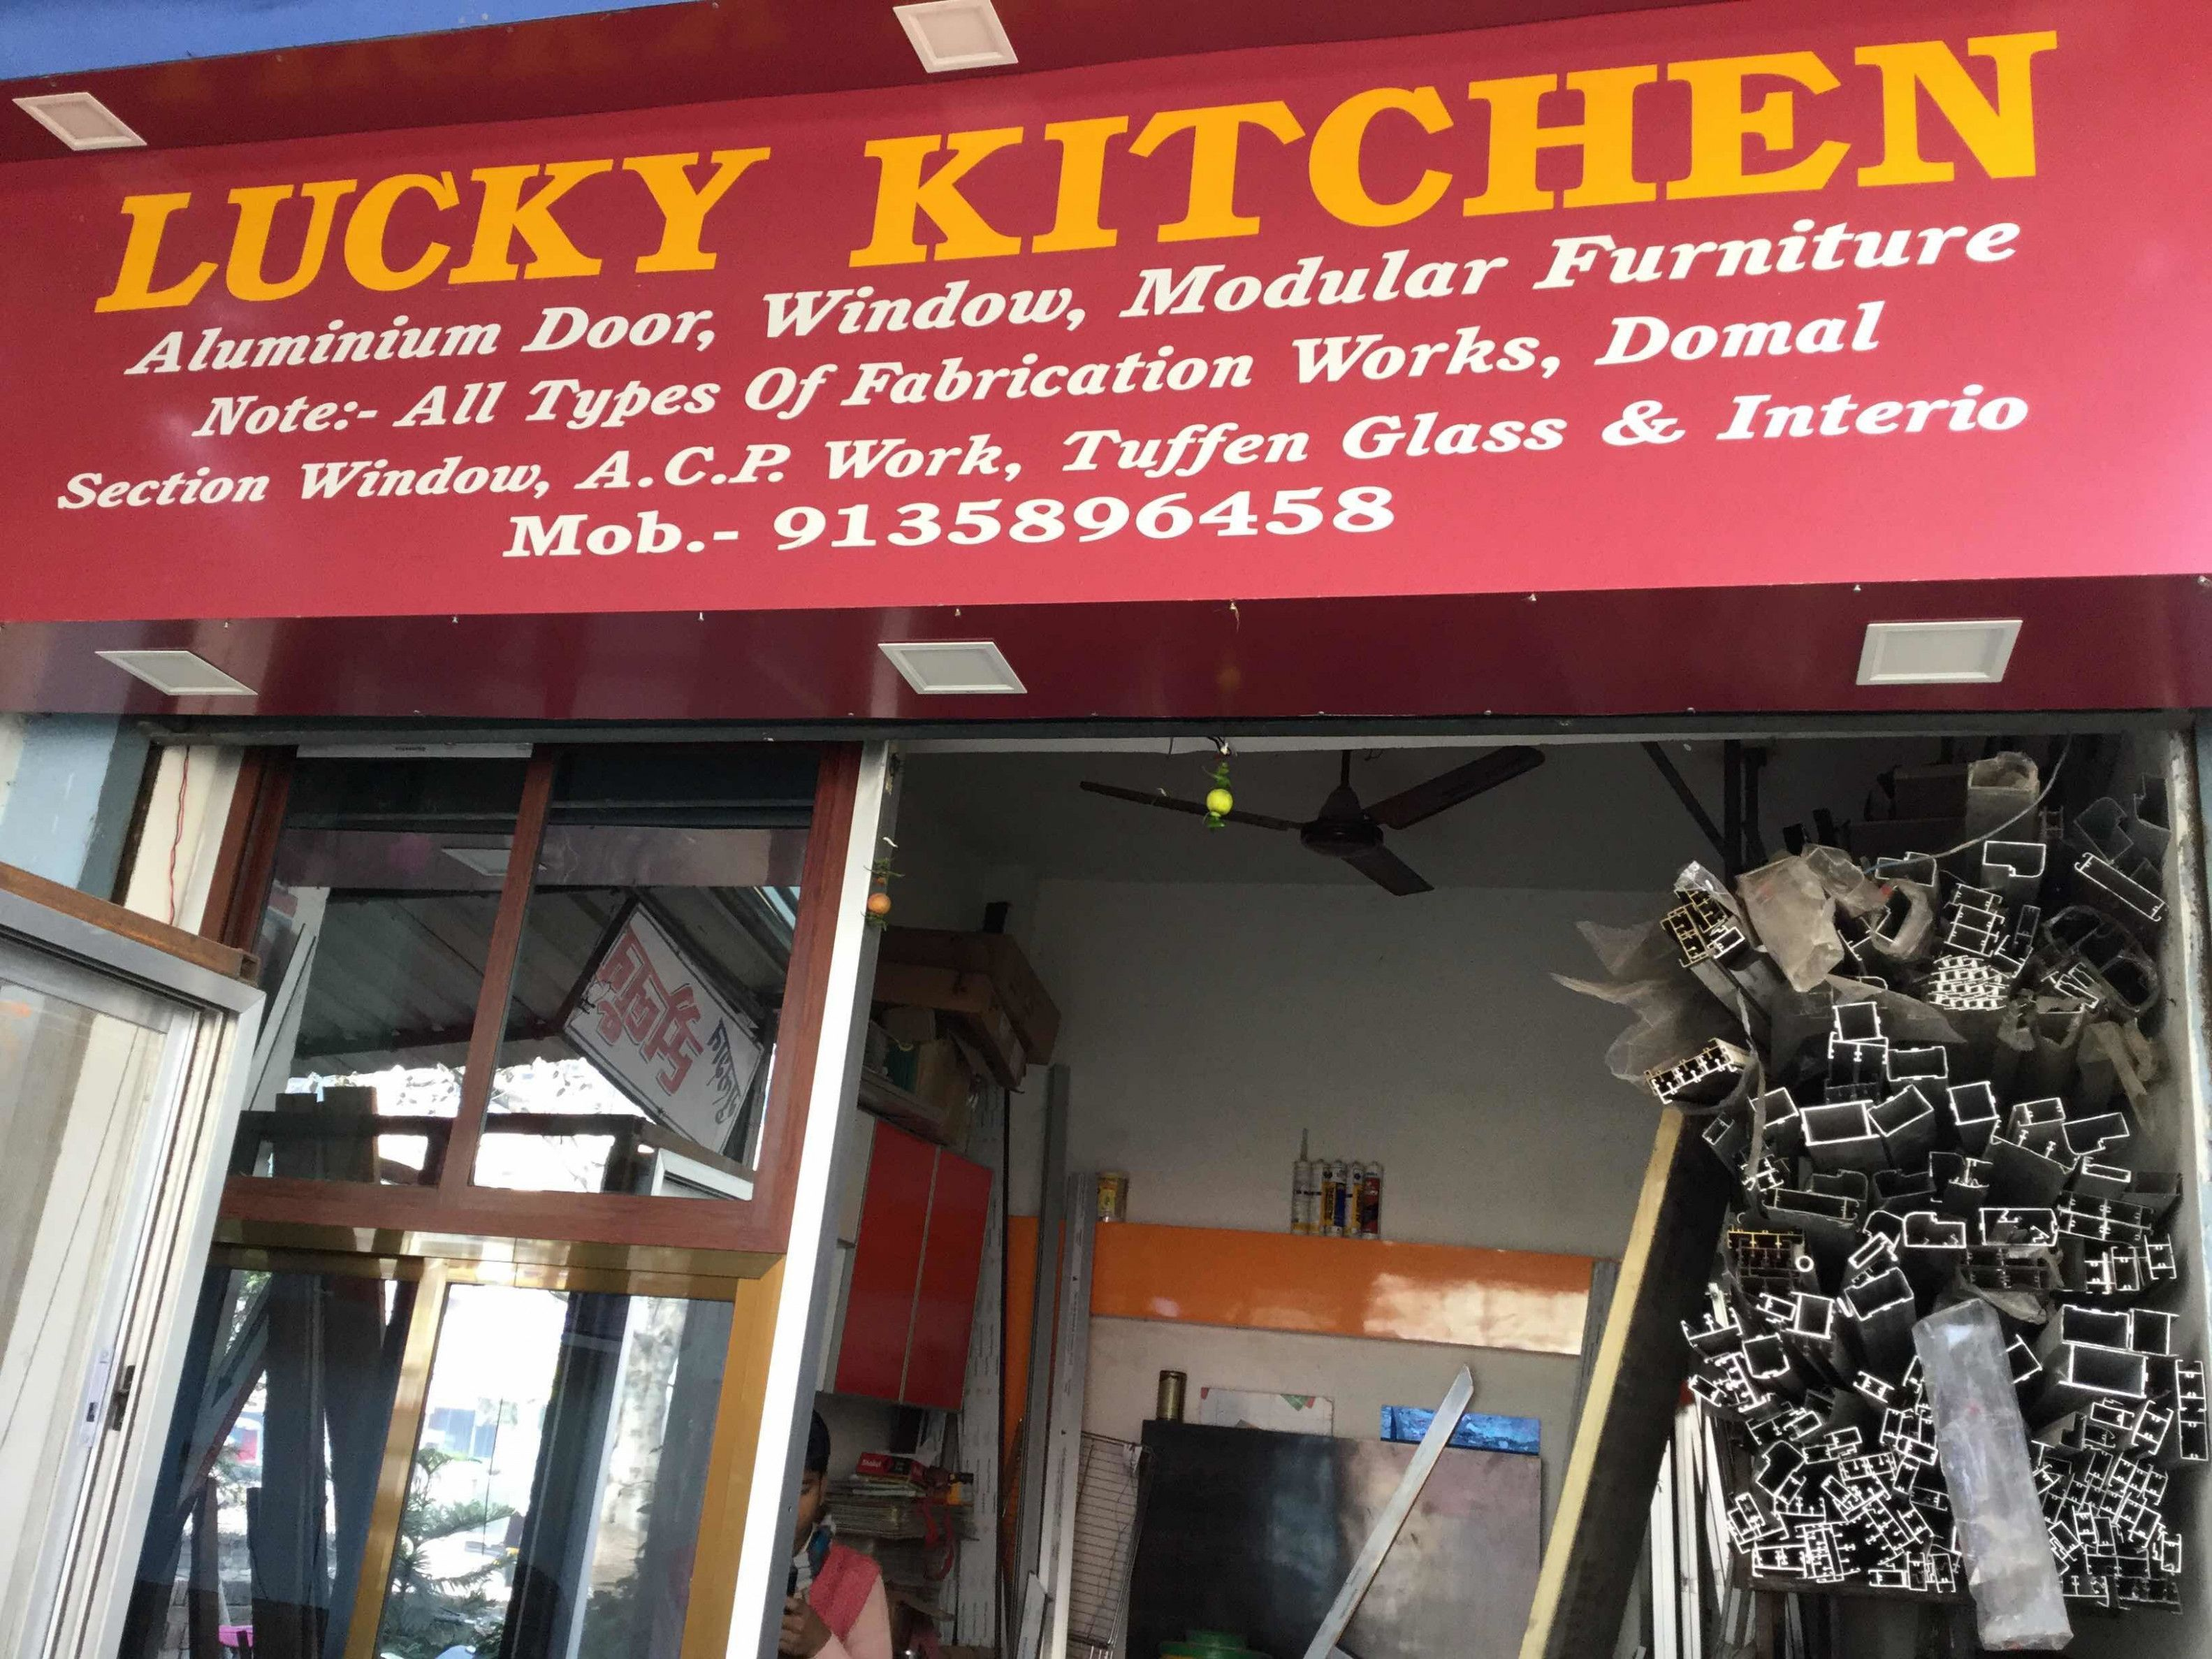 How To Leave Lucky Kitchen Without Being Noticed Lucky Kitchen Kitchen Images Lucky Kitchen Photos